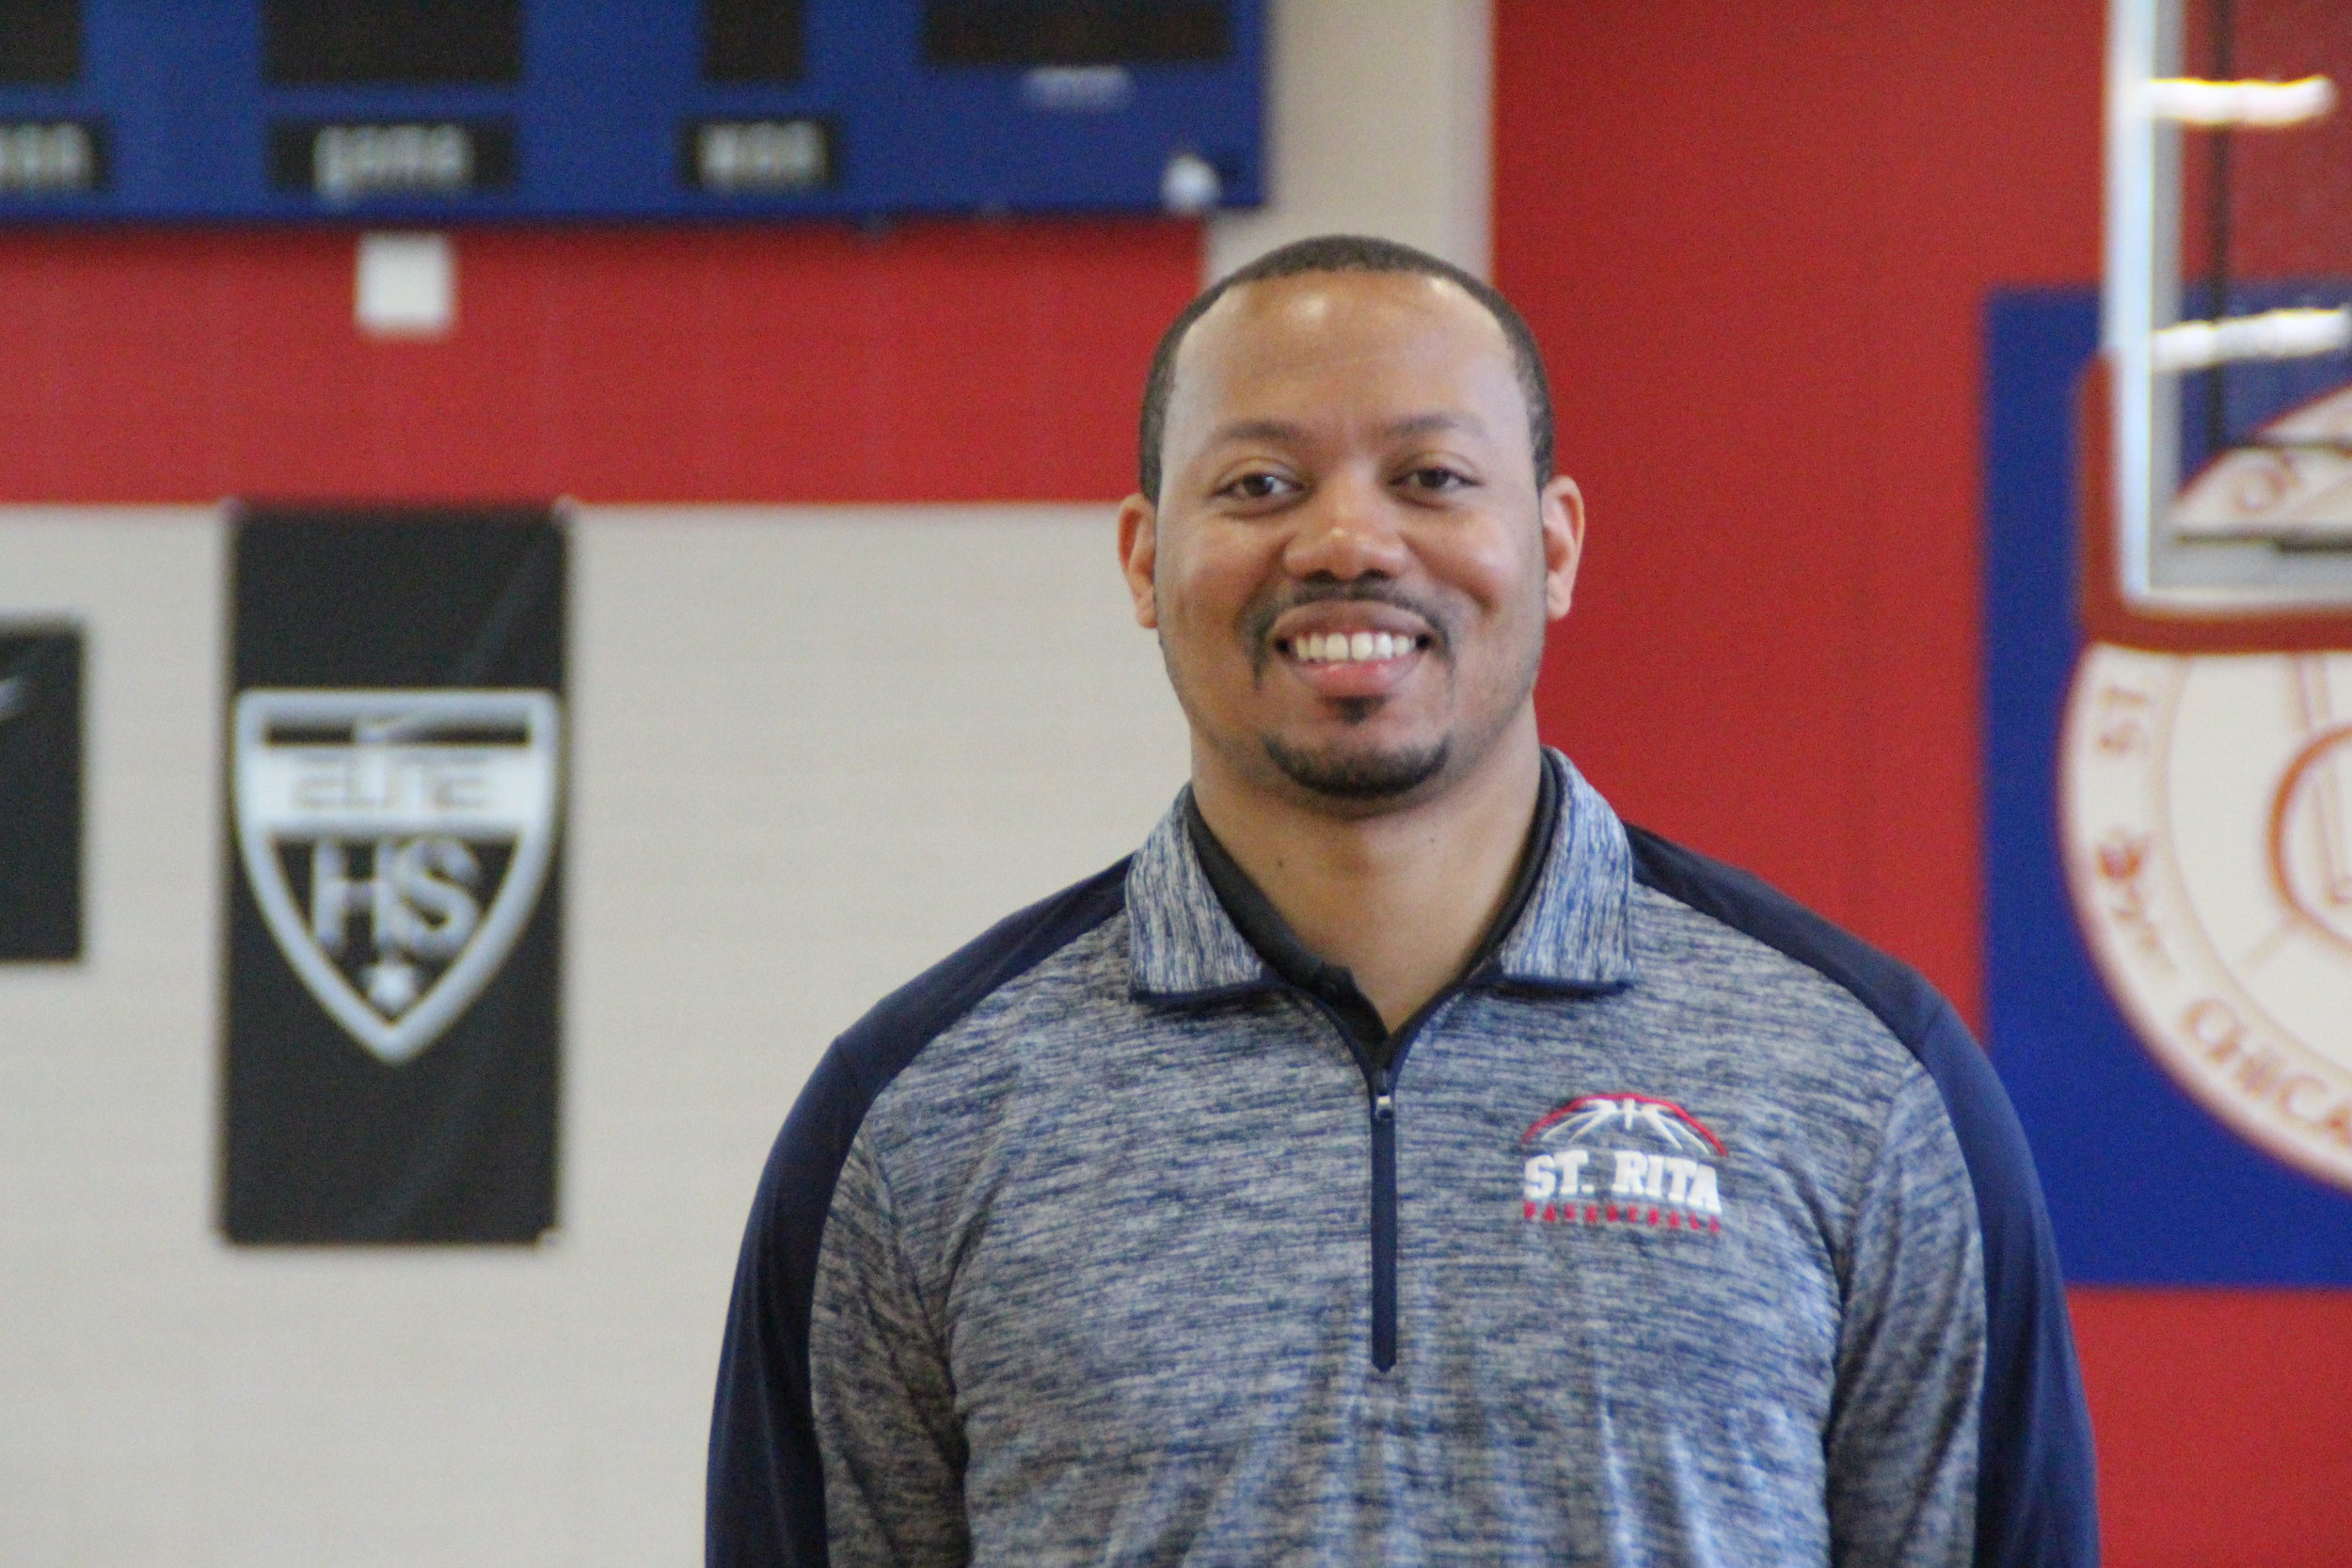 Roshawn Russell '08, St. Rita Head Basketball Coach